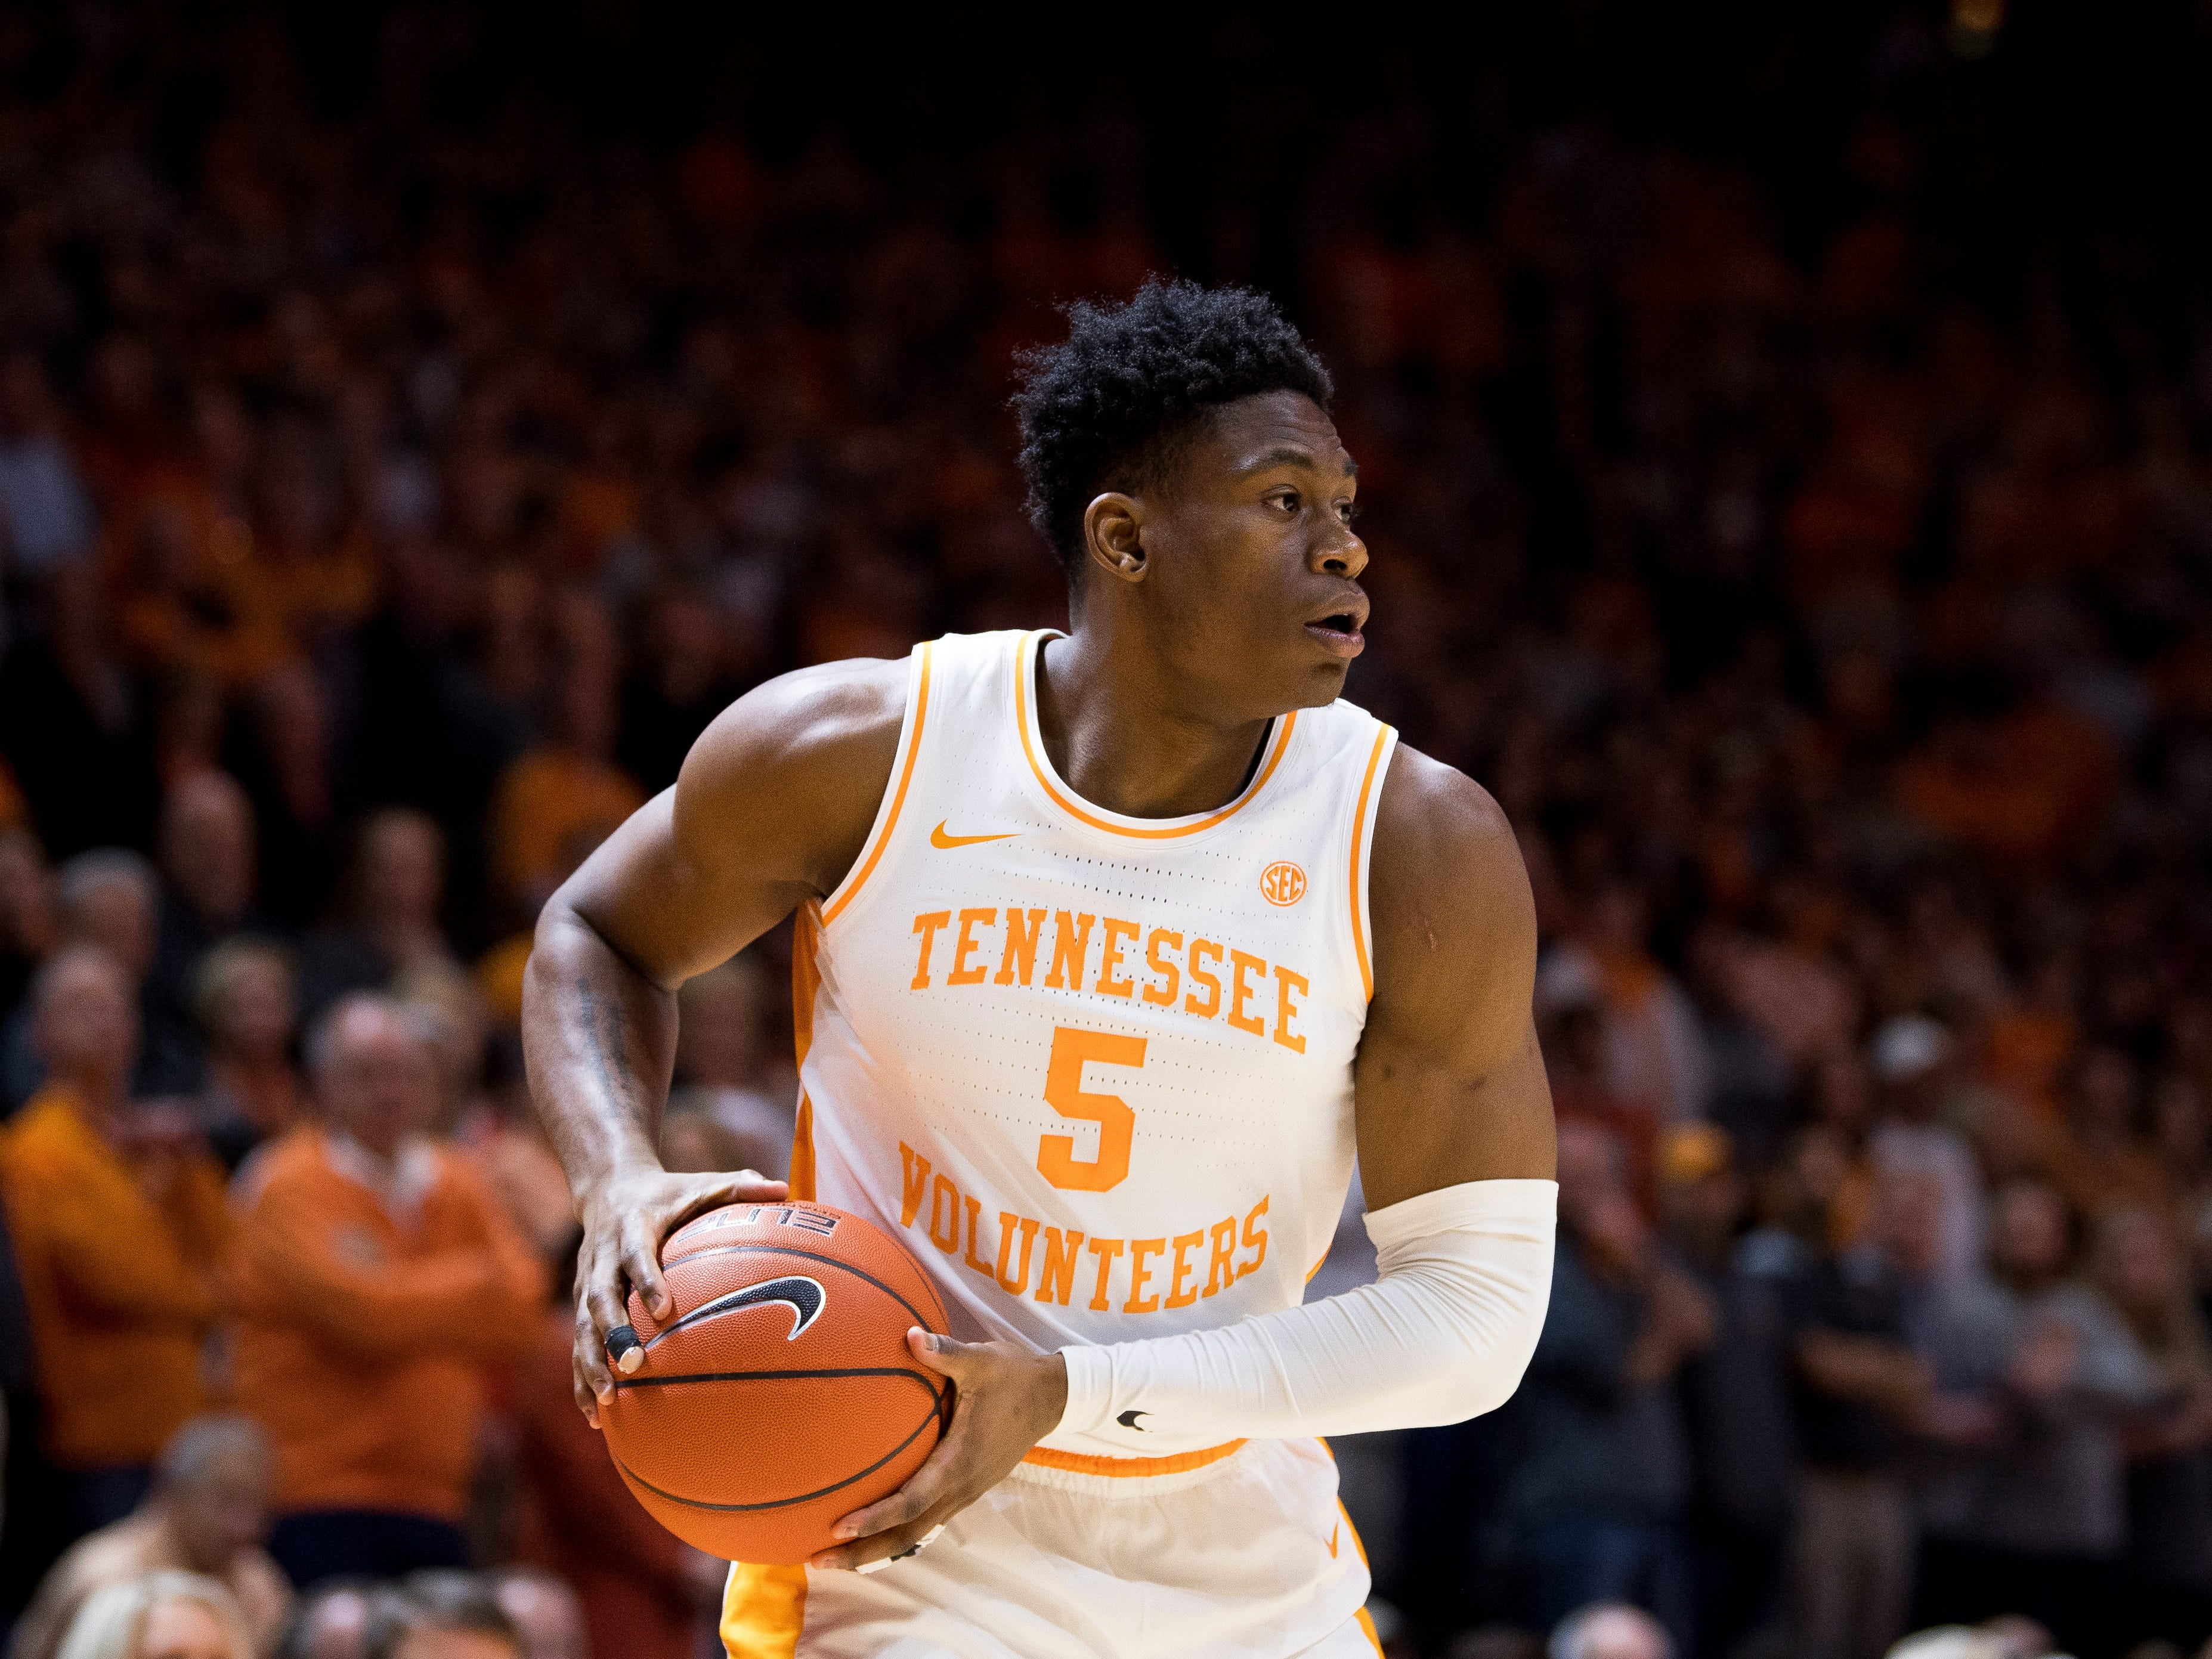 Tennessee guard Admiral Schofield (5) during Tennessee's home SEC game against South Carolina at Thompson-Boling Arena in Knoxville on Wednesday, February 13, 2019.